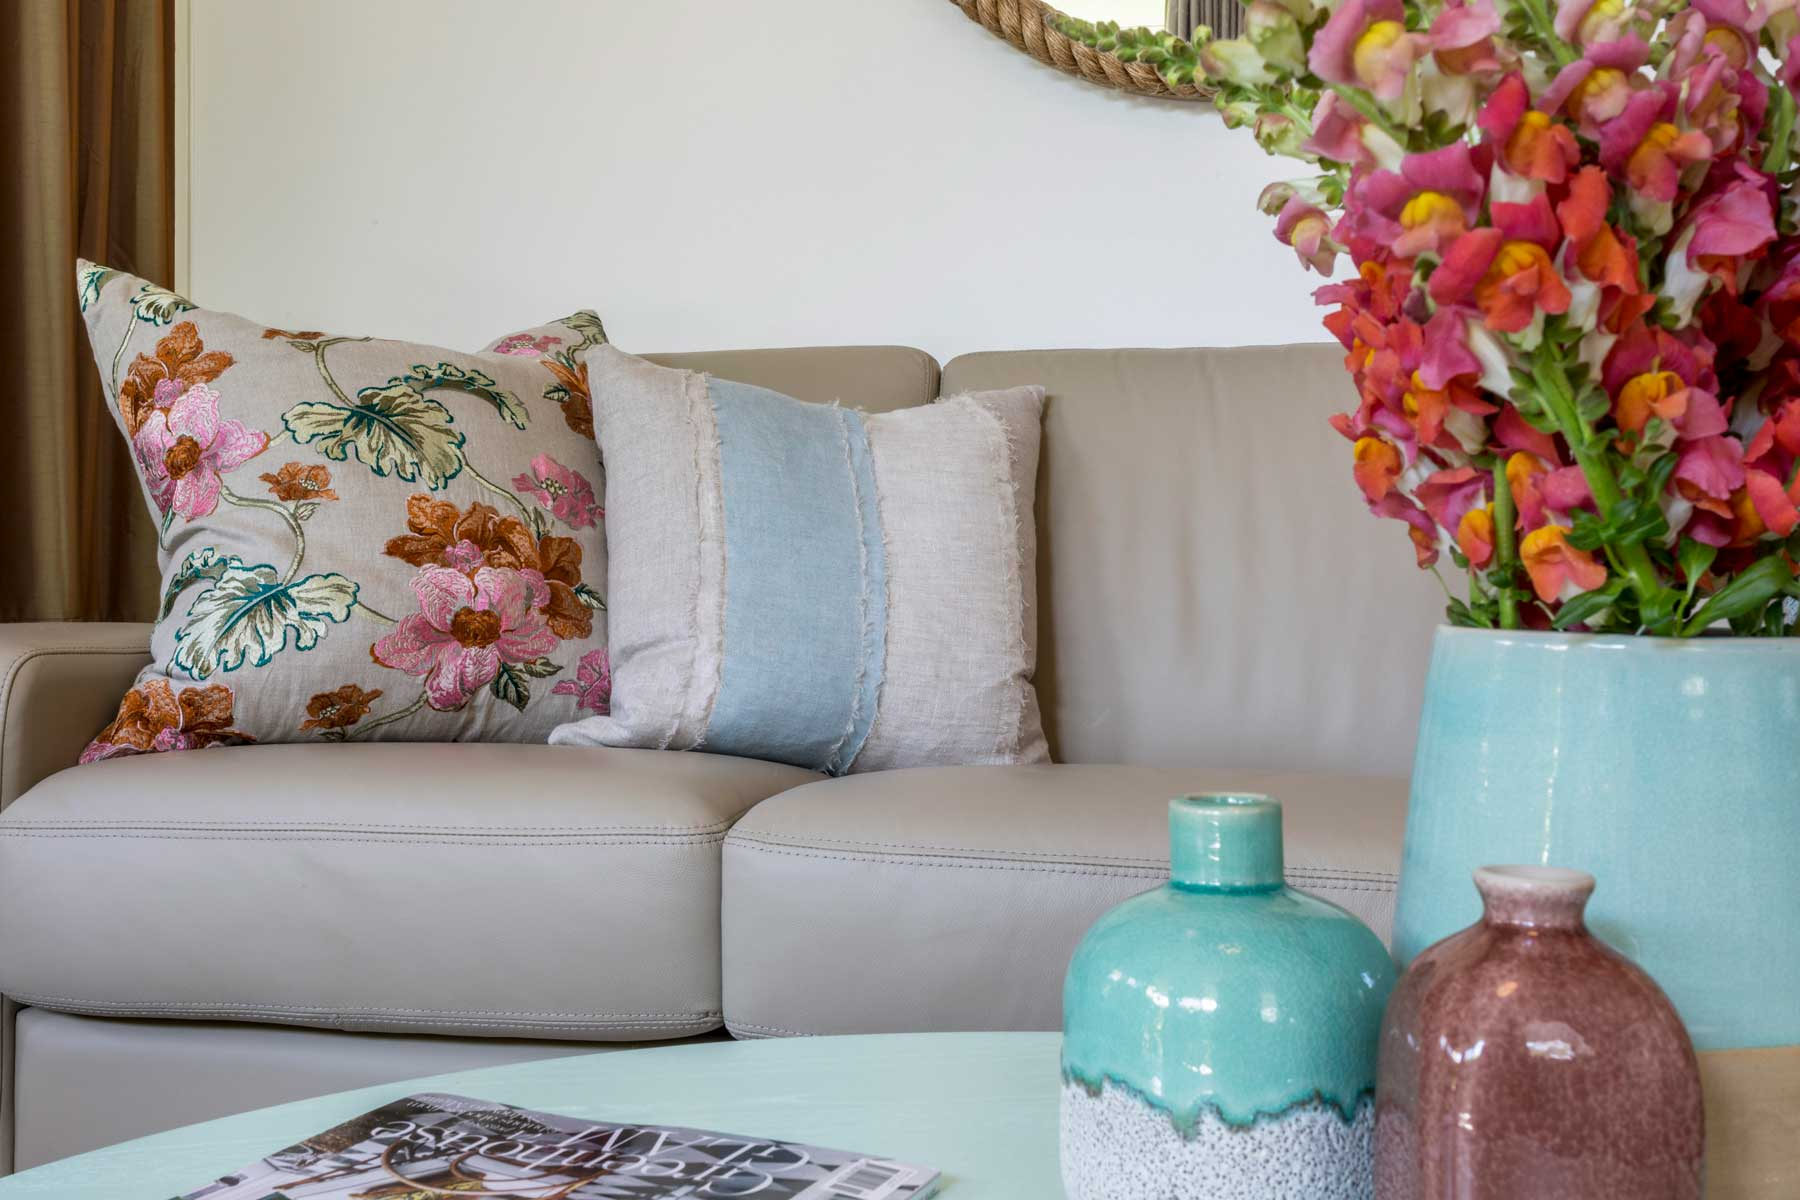 Robyn's vibrant beach apartment - after - cushion vases